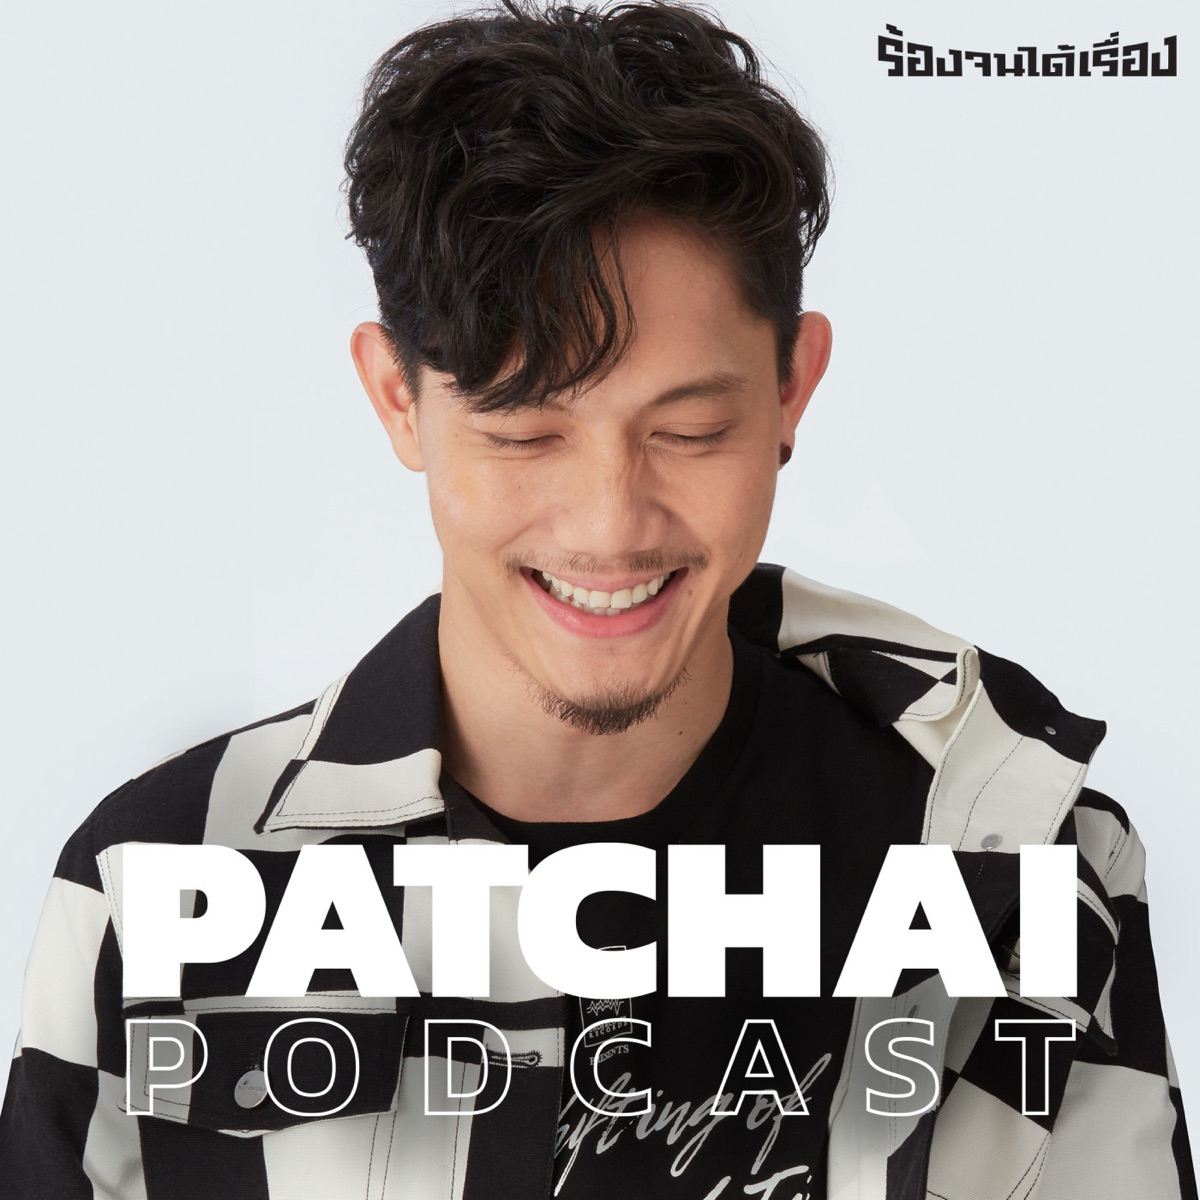 PATCHAI PODCAST